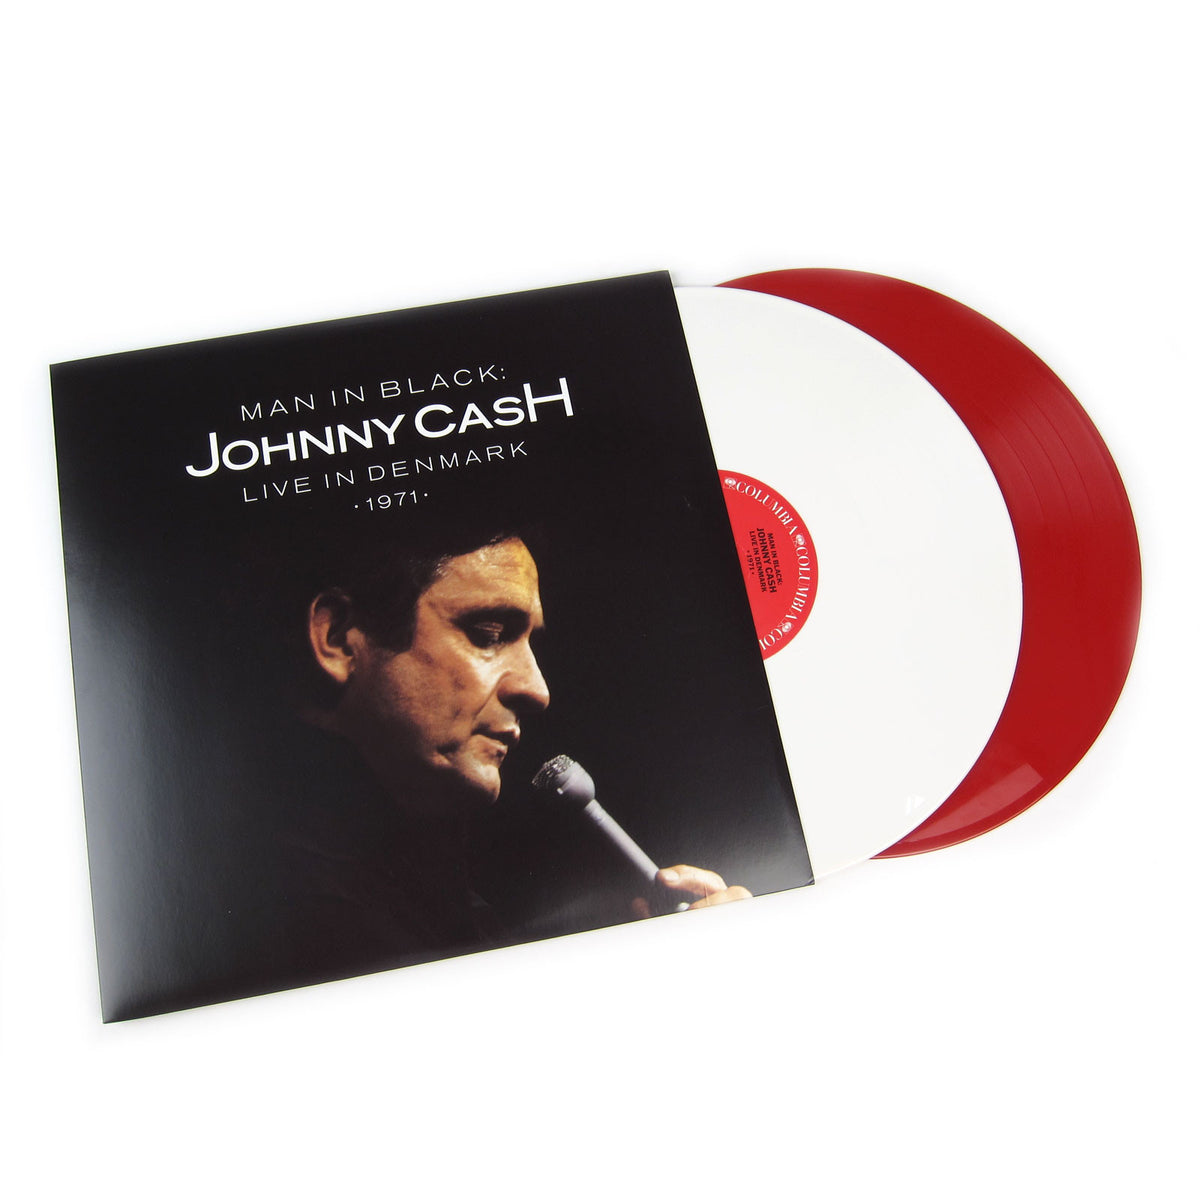 Johnny Cash: Man In Black - Live In Demark 1971 (Colored Vinyl) Vinyl 2LP (Record Store Day)